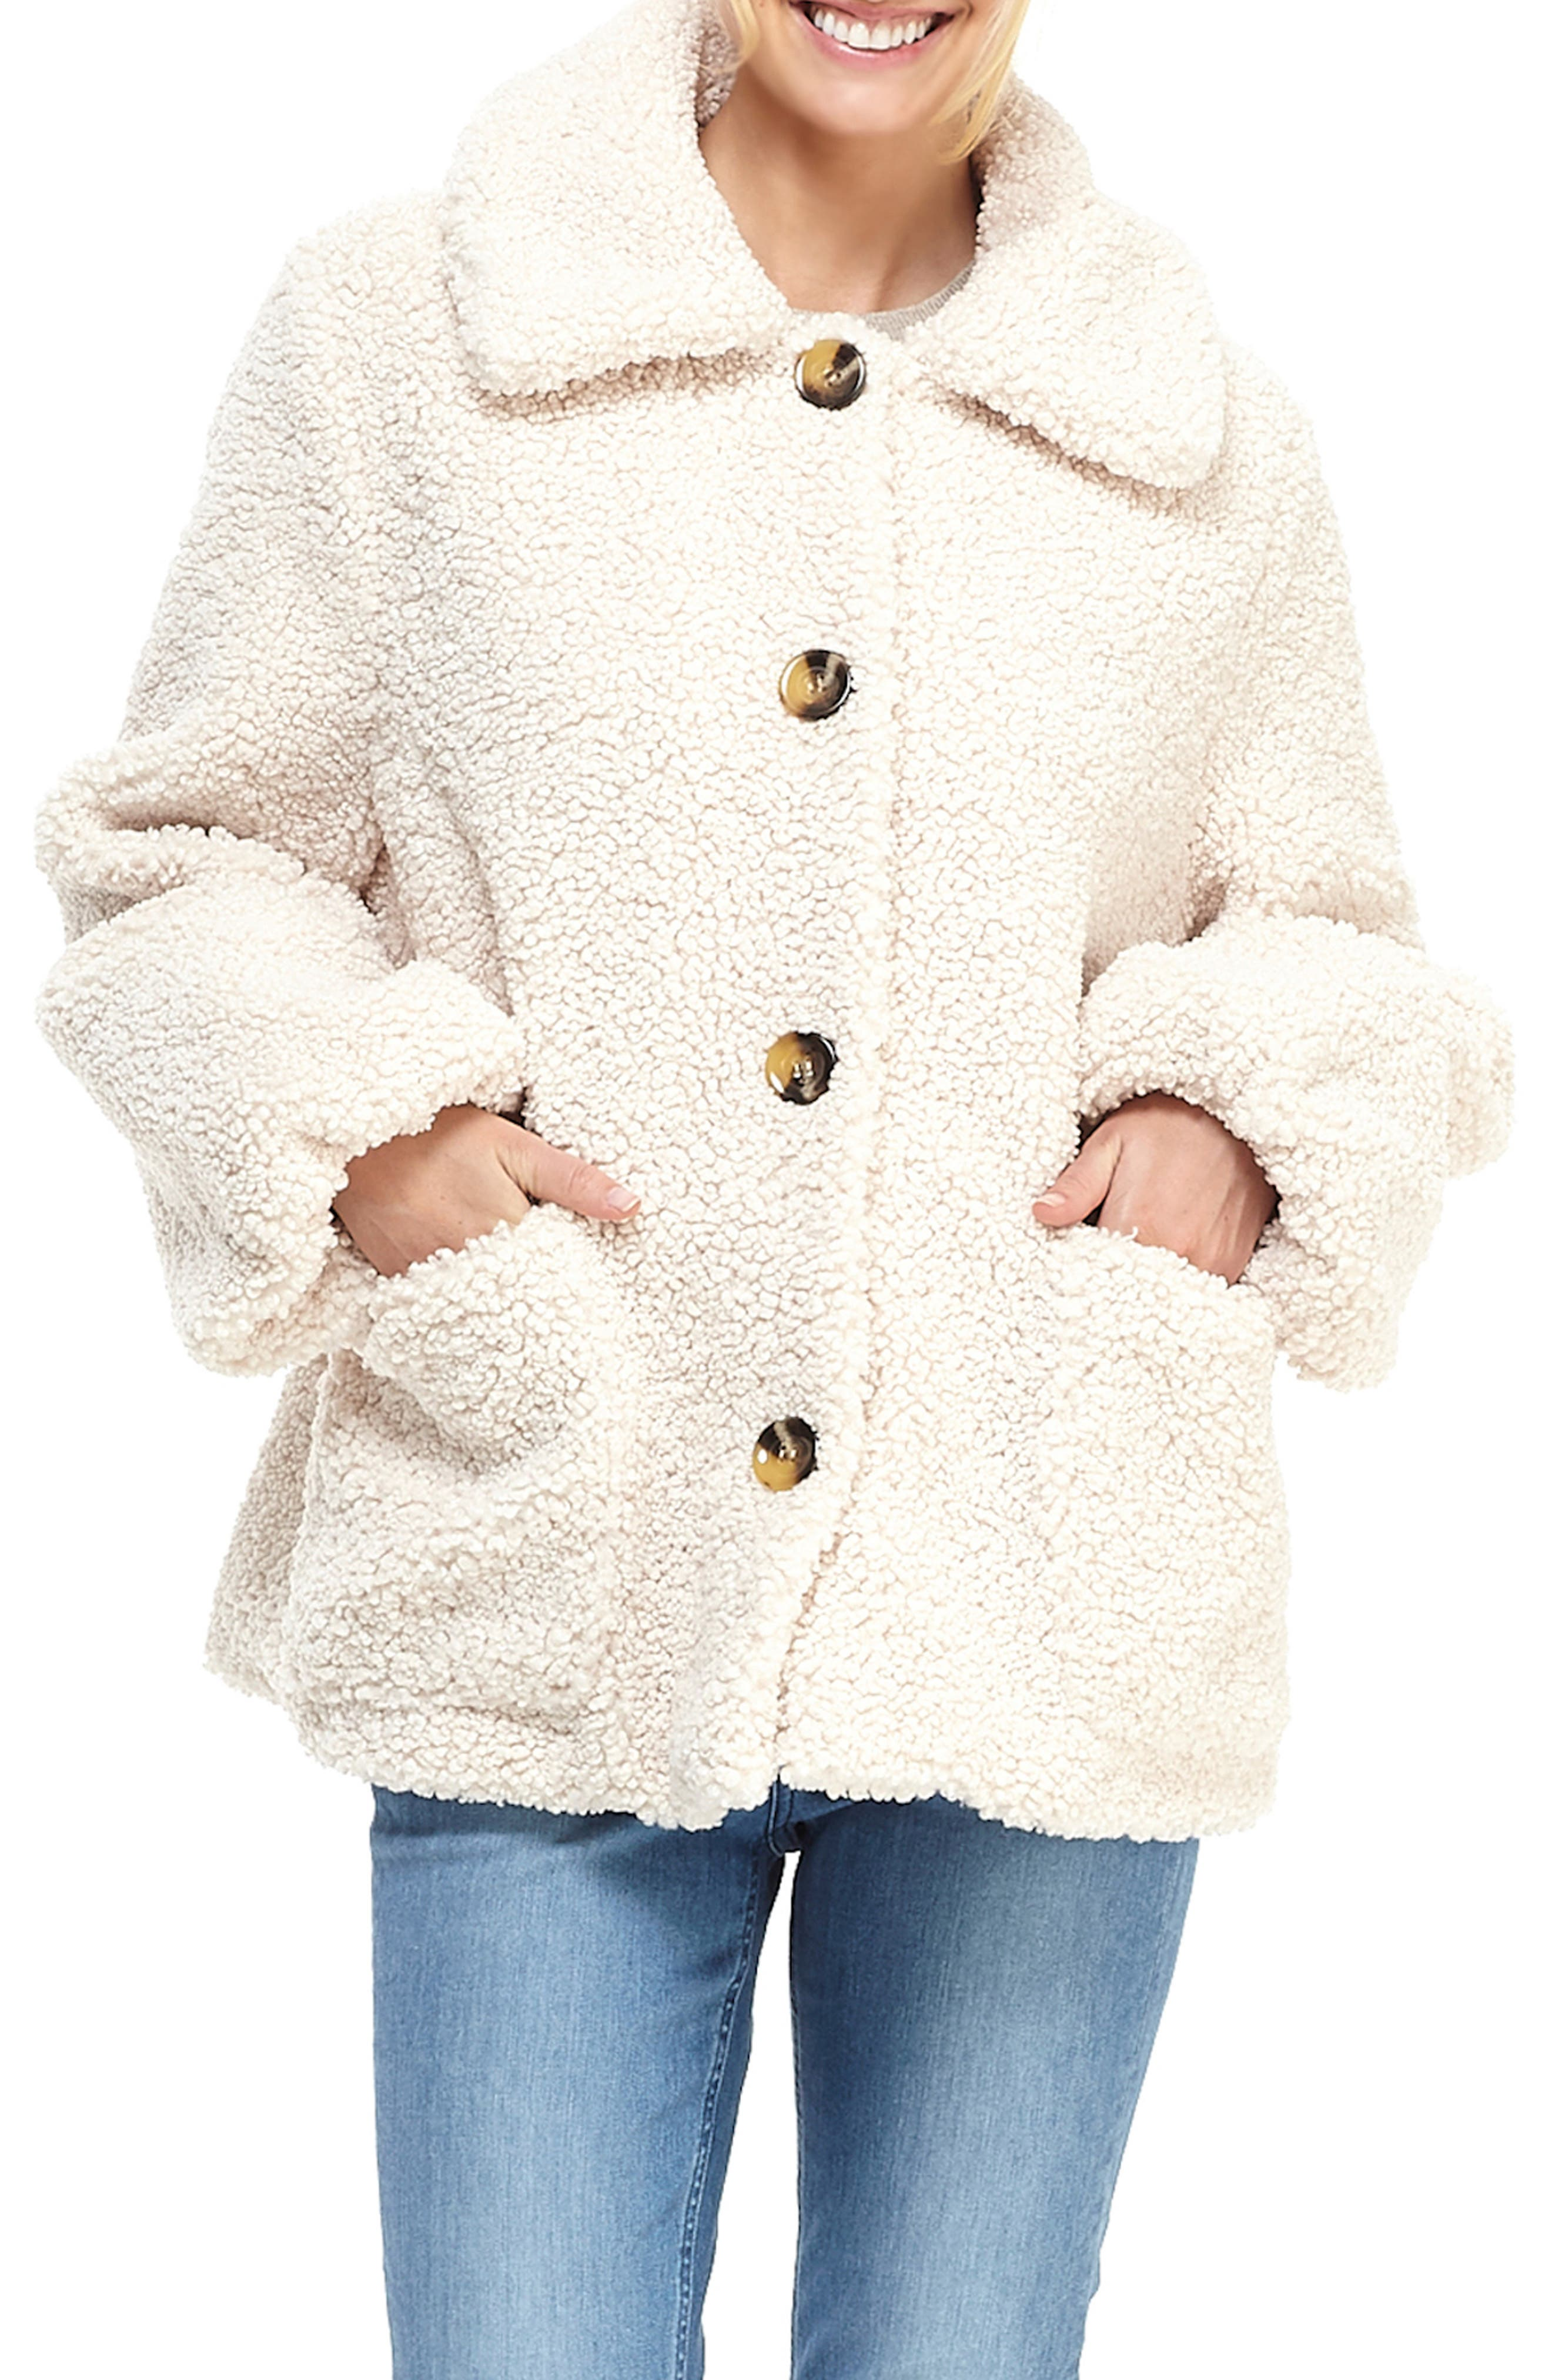 70s Jackets & Hippie Vests, Ponchos Womens Gal Meets Glam Collection Willa Teddy Bear Coat Size - Nordstrom Exclusive $190.00 AT vintagedancer.com